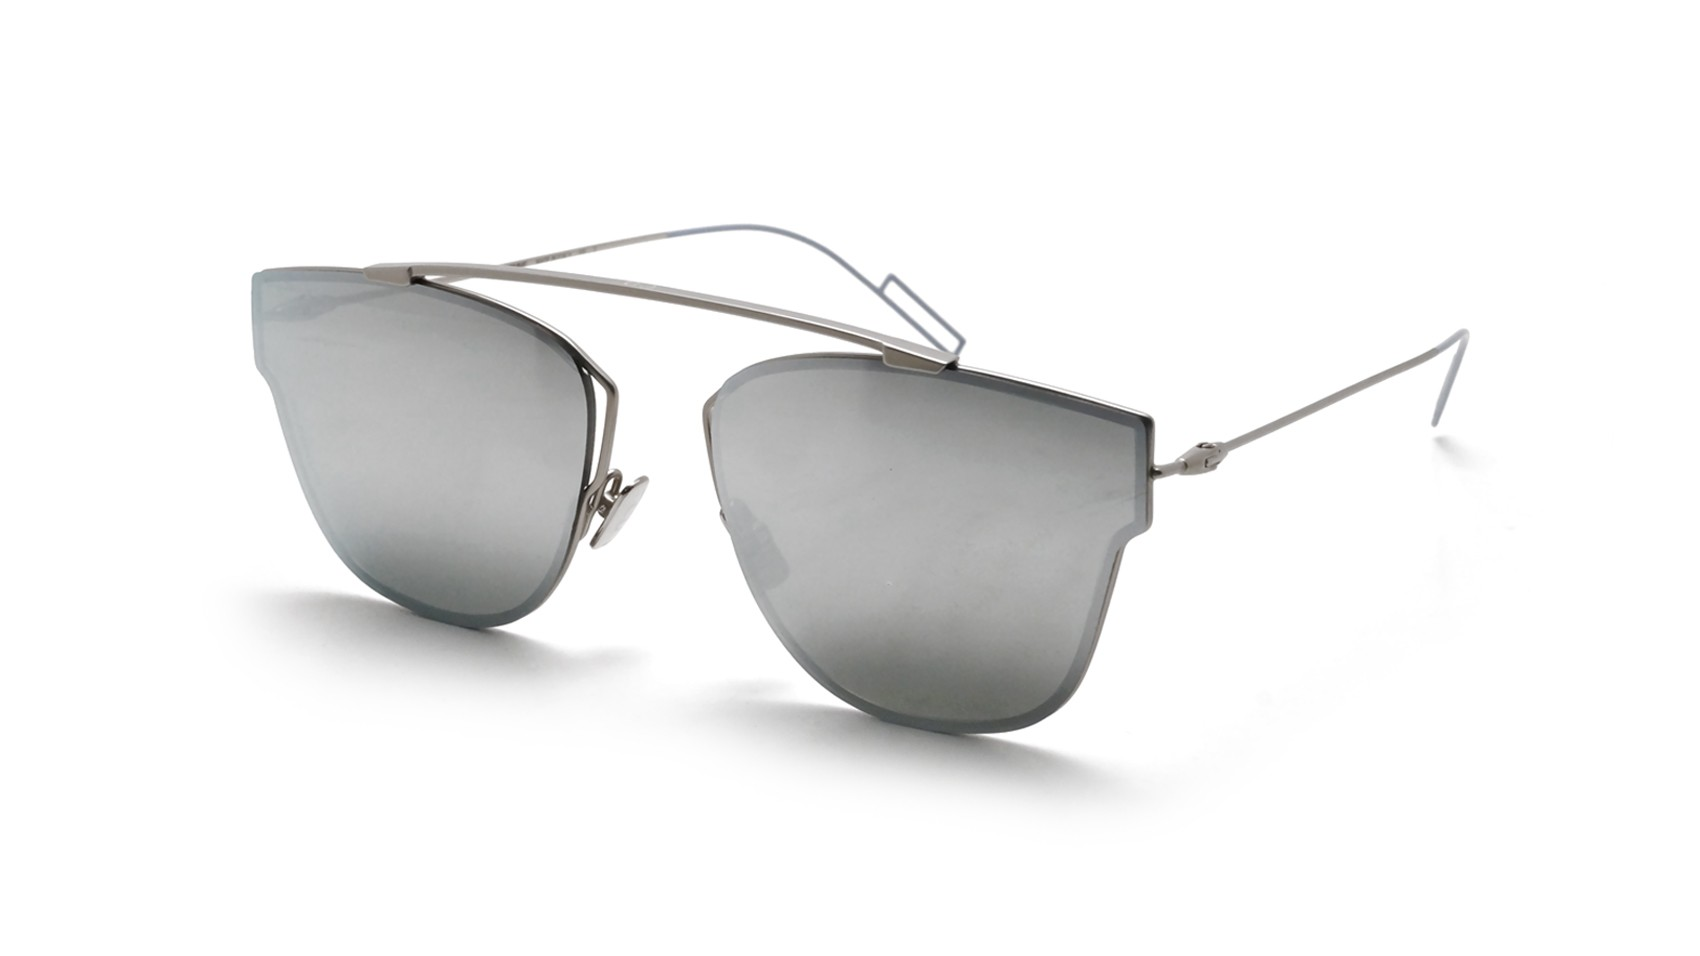 252faaf599c20 Sunglasses Dior 0204S 011DC 57-18 Silver Large Mirror